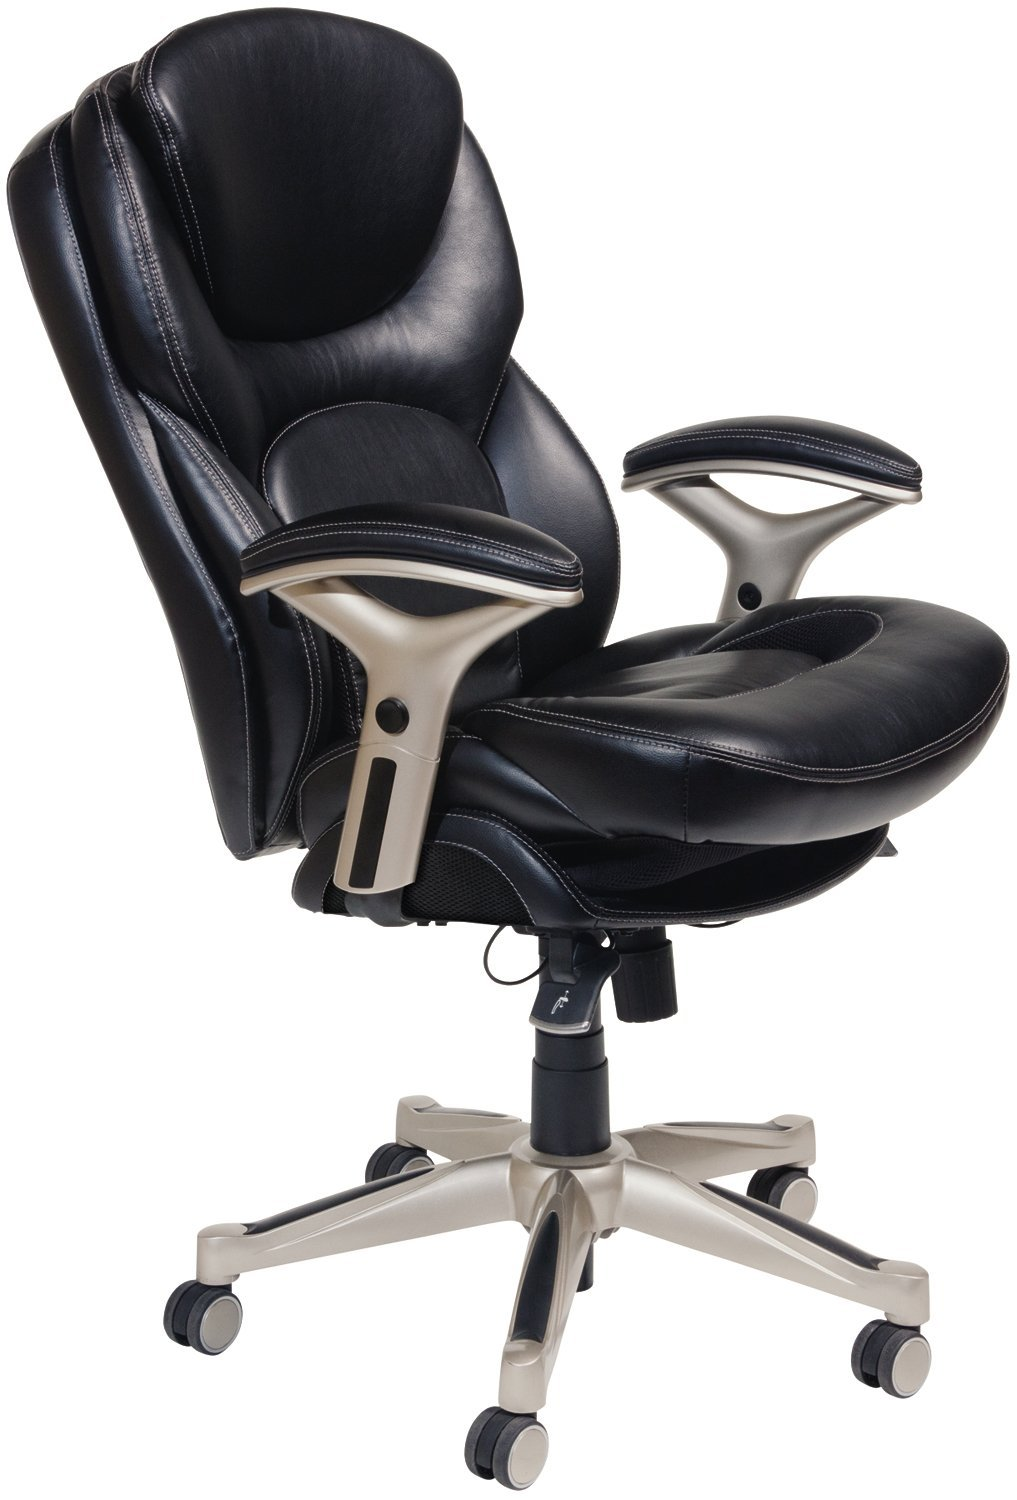 Best office chair 2016 - Serta 44186 Back In Motion